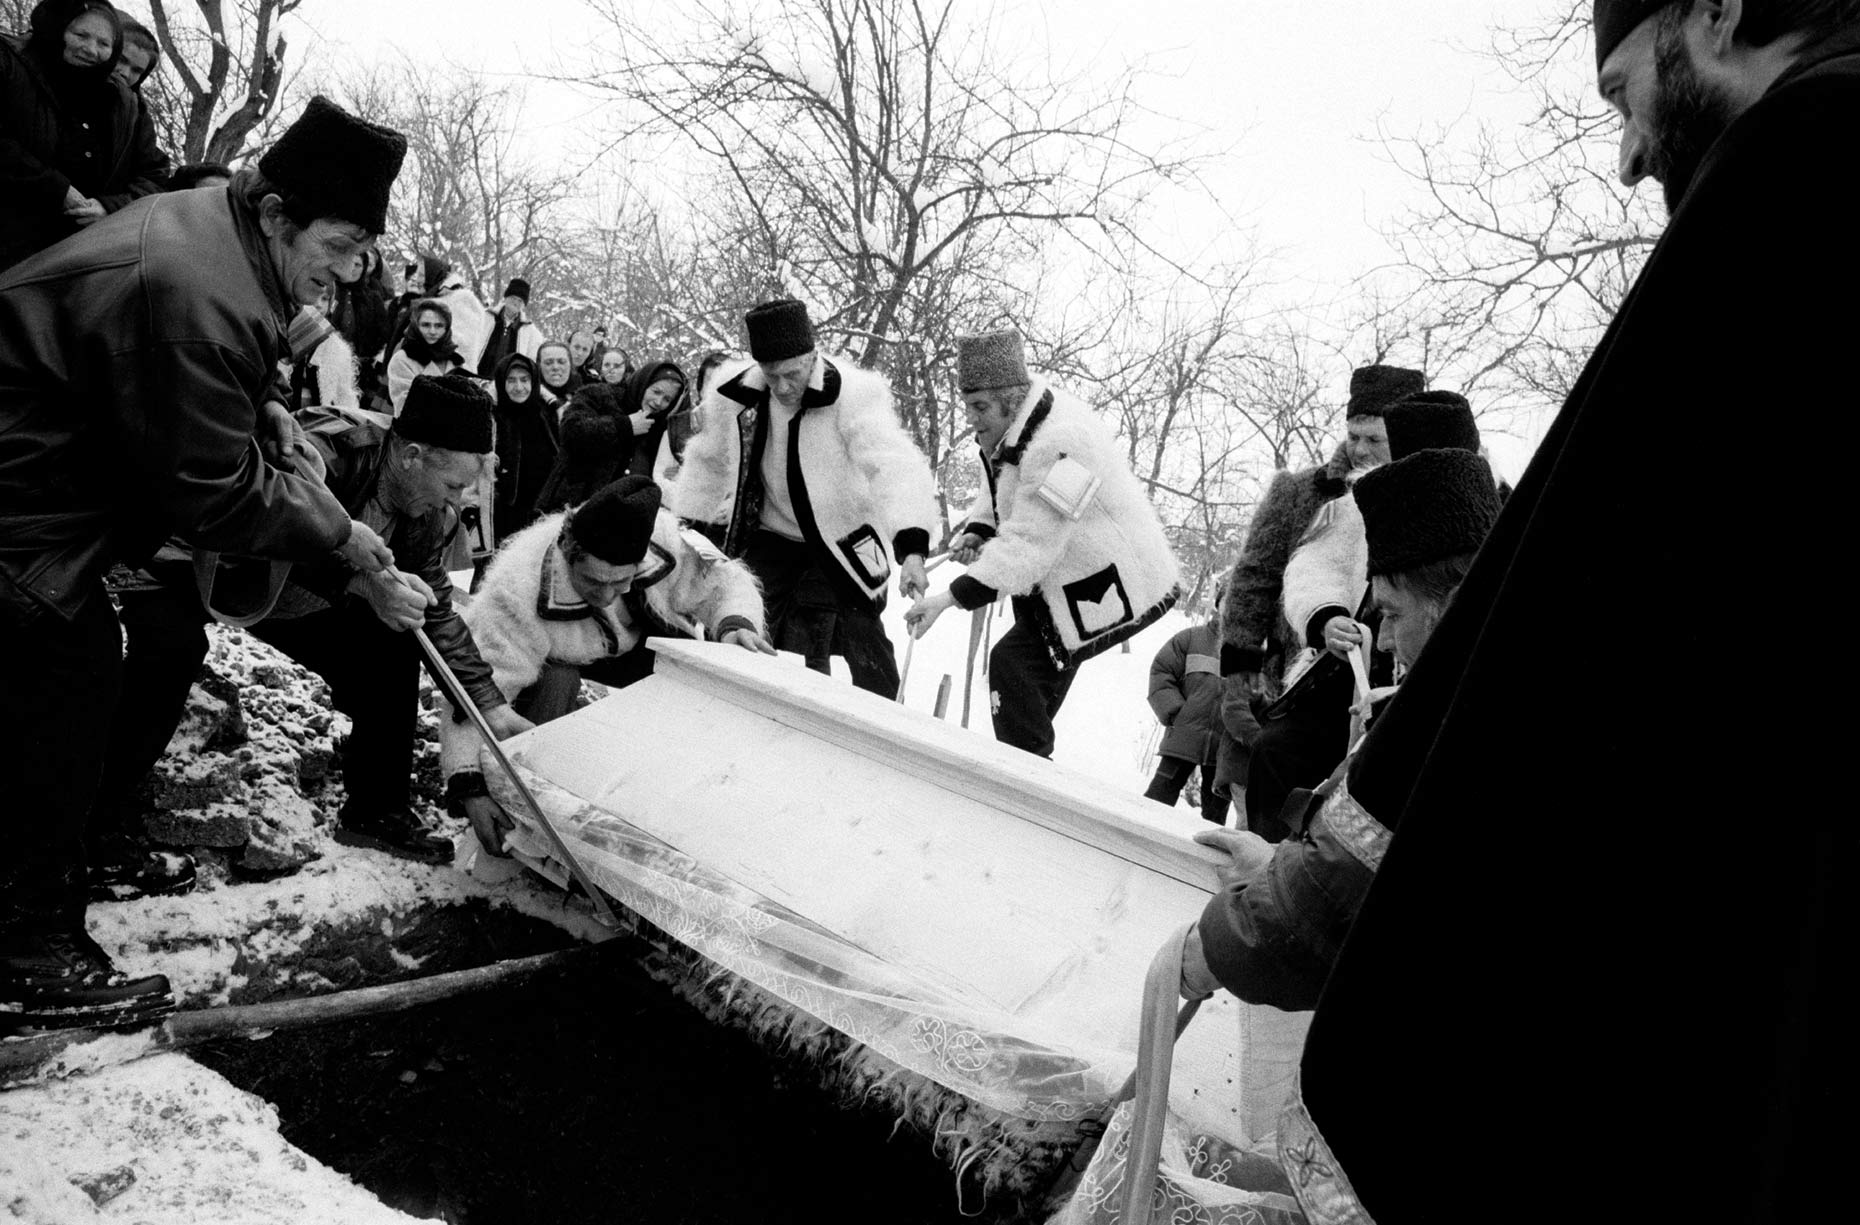 018_Master_Winter_Funeral_Grave_Pries2-001